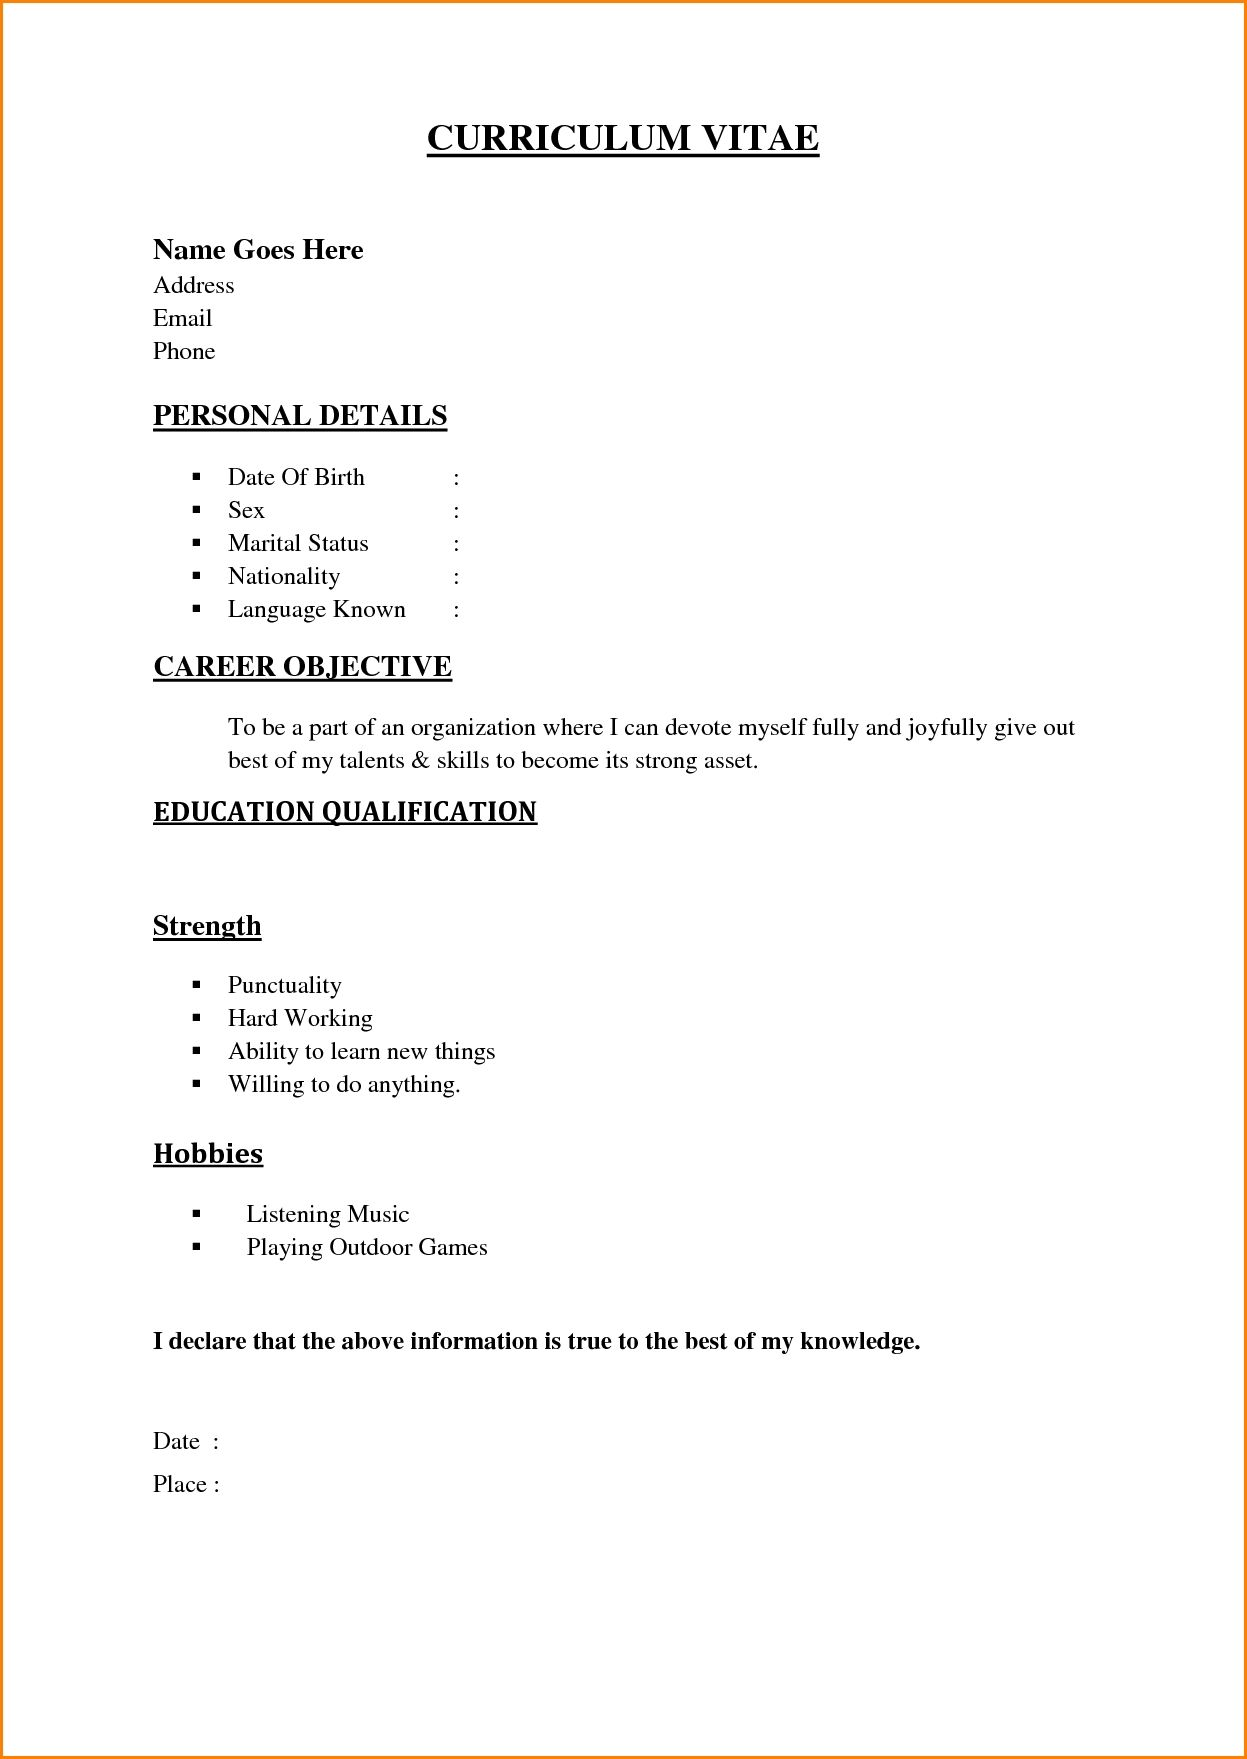 Resume Simple Best And Format Samples Alexa Examples Resumes Example  Collage Application Template  What Does A Resume Look Like For A Job